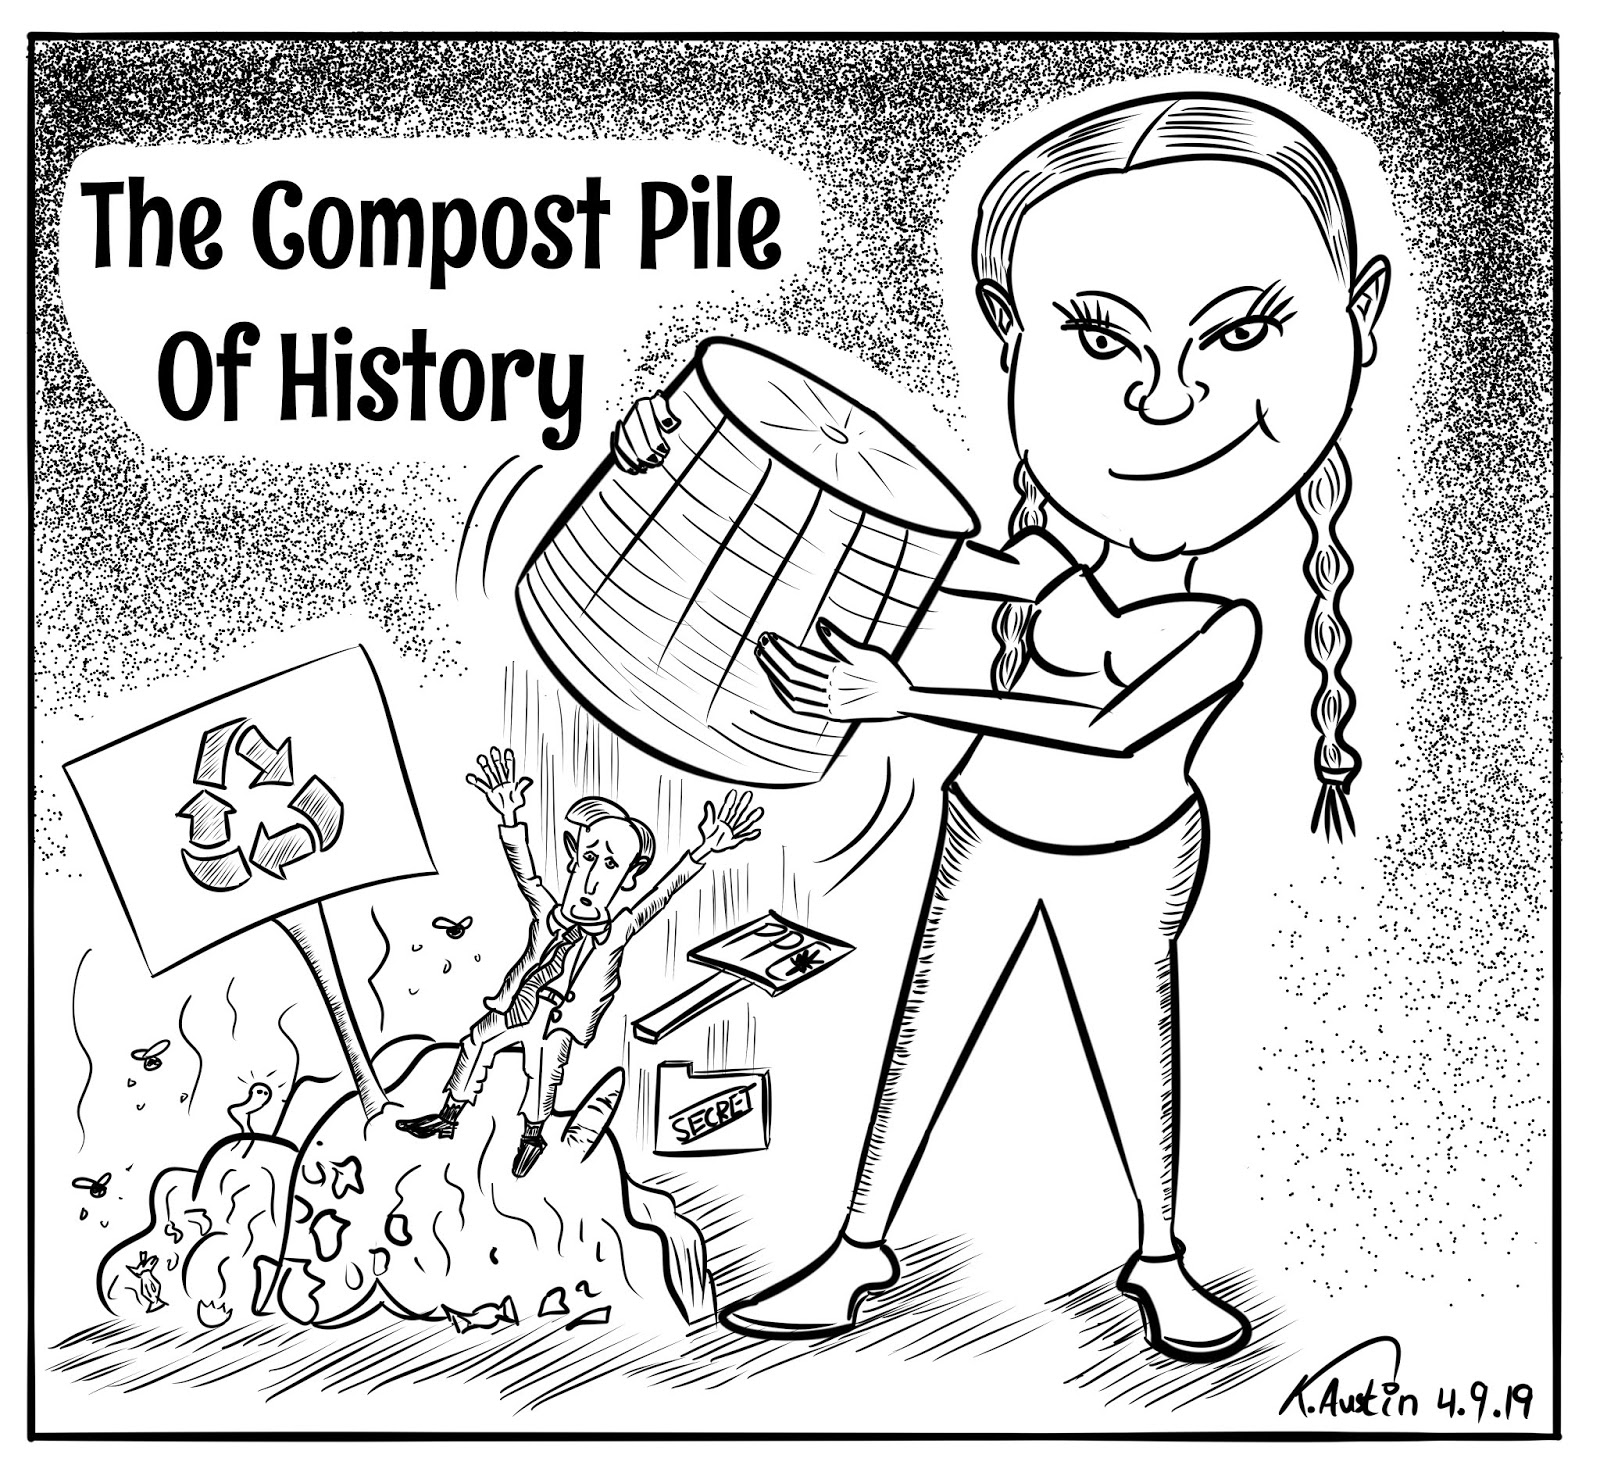 Freak's Own: The Compost Pile of History